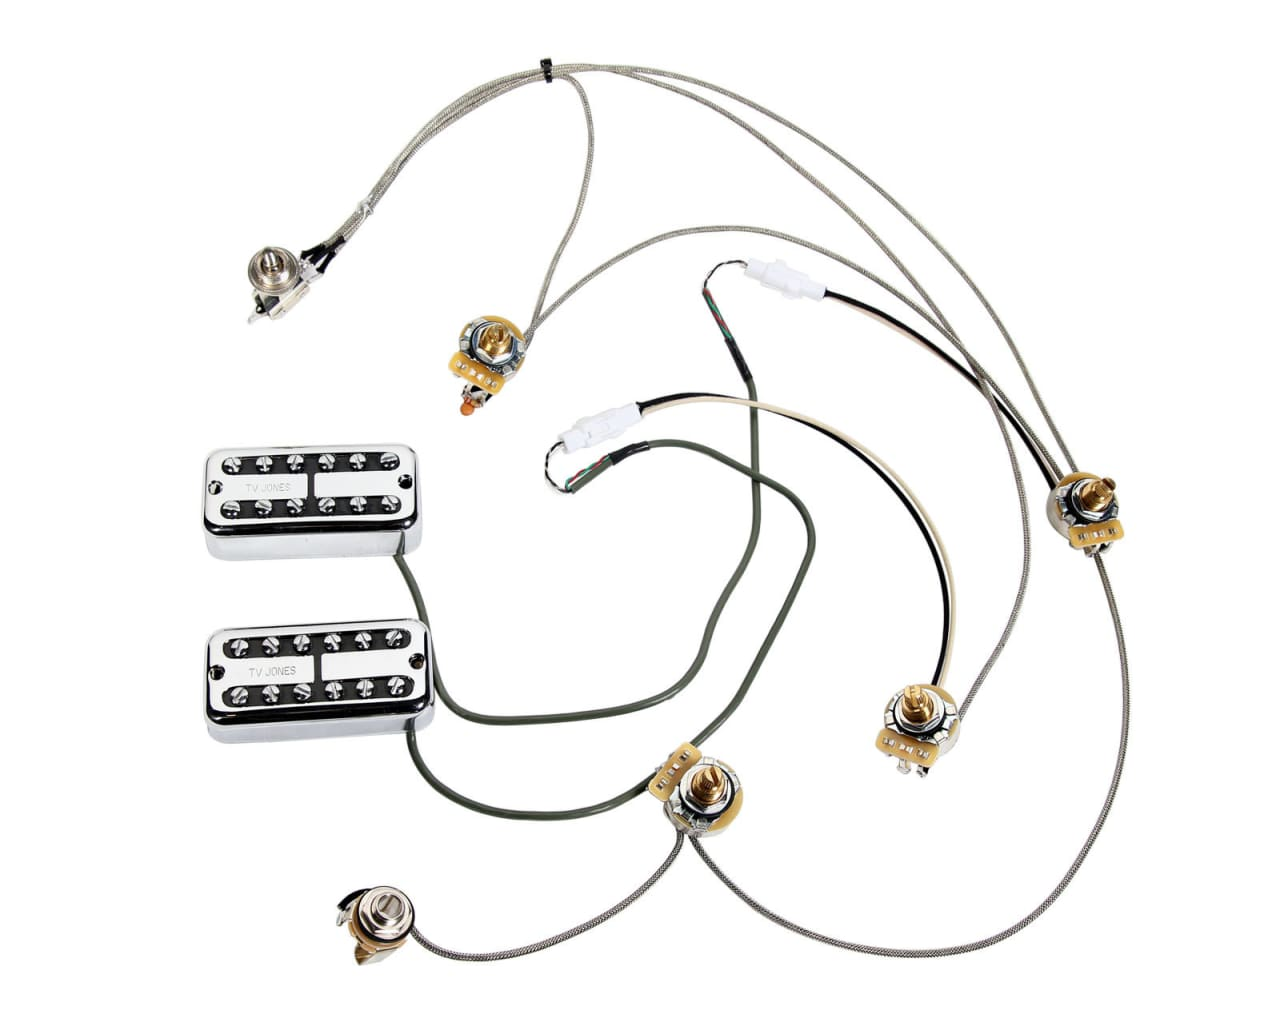 gretsch guitar wiring diagrams the blog gretsch guitar wiring harness tv jones power'tron pickups + gretsch electromatic wiring ...